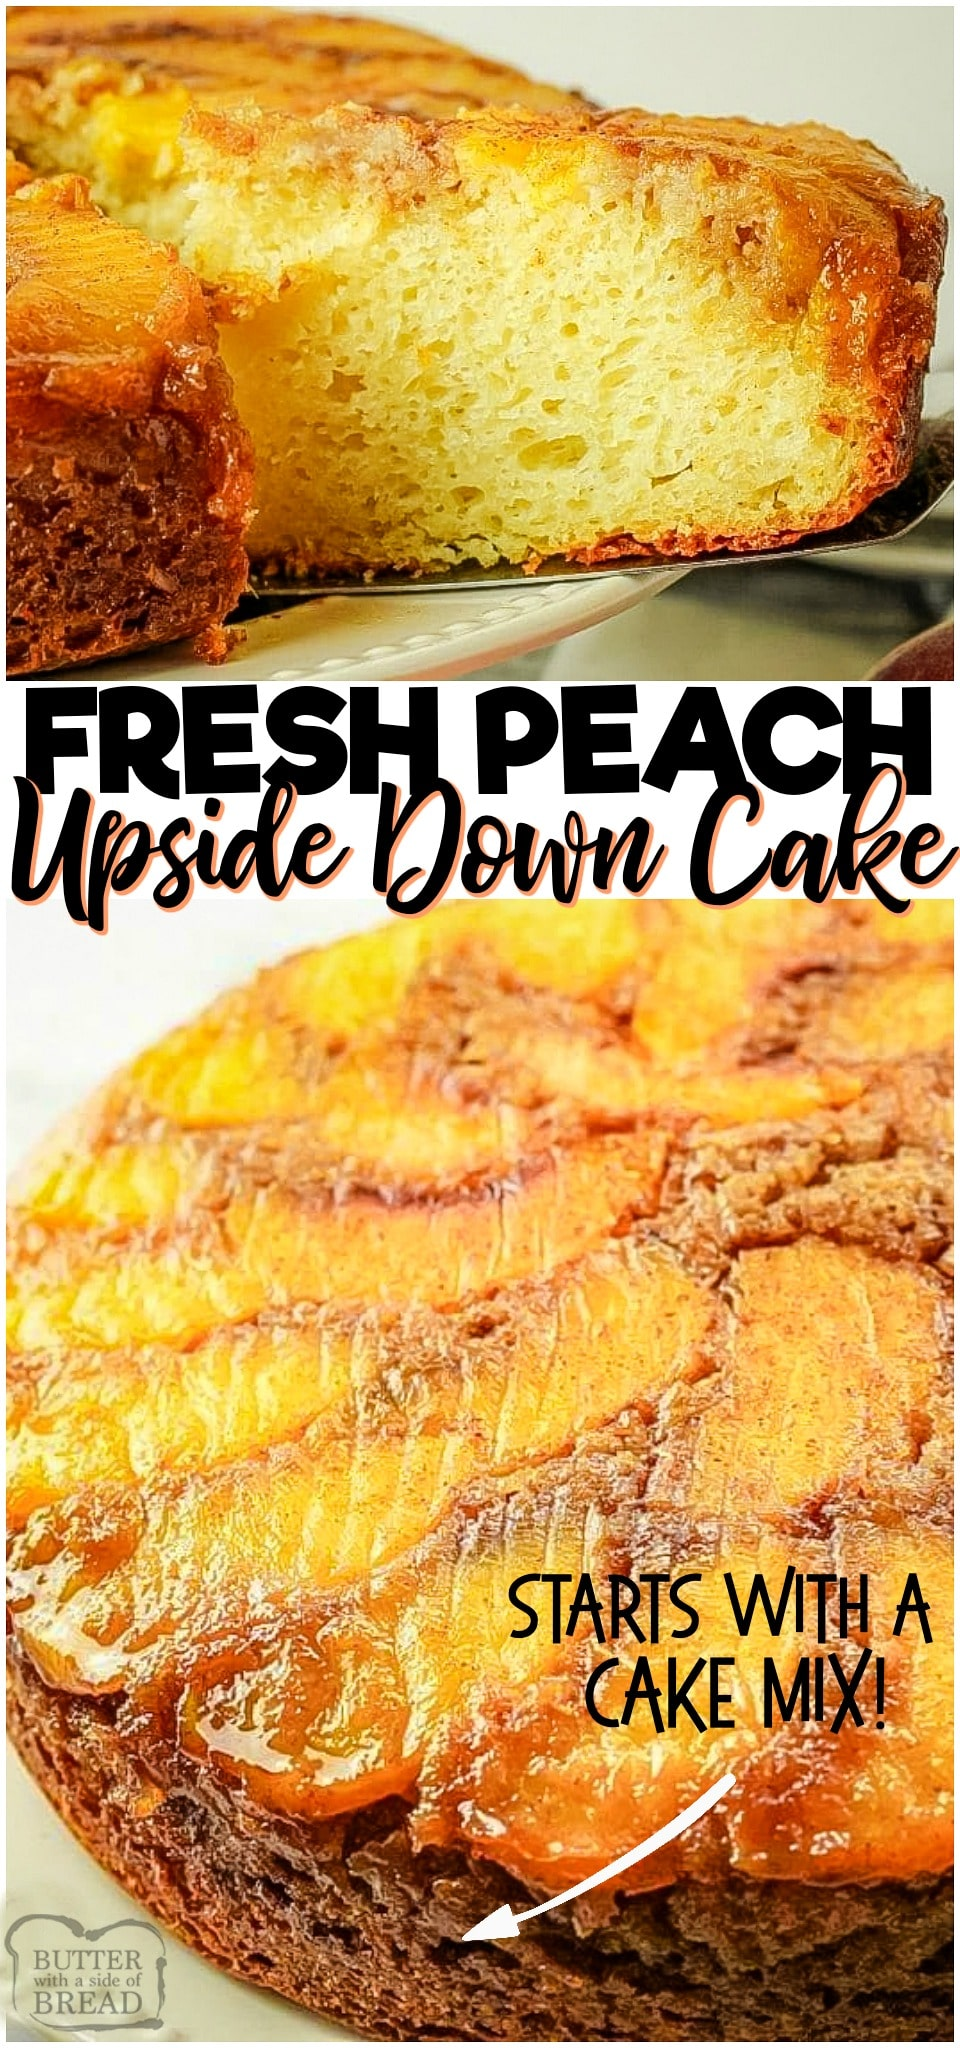 Peach Upside Down Cake is an amazing peach cake recipe with a handful of pantry ingredients + peaches!  This cake is the perfect way to enjoy fresh peaches!